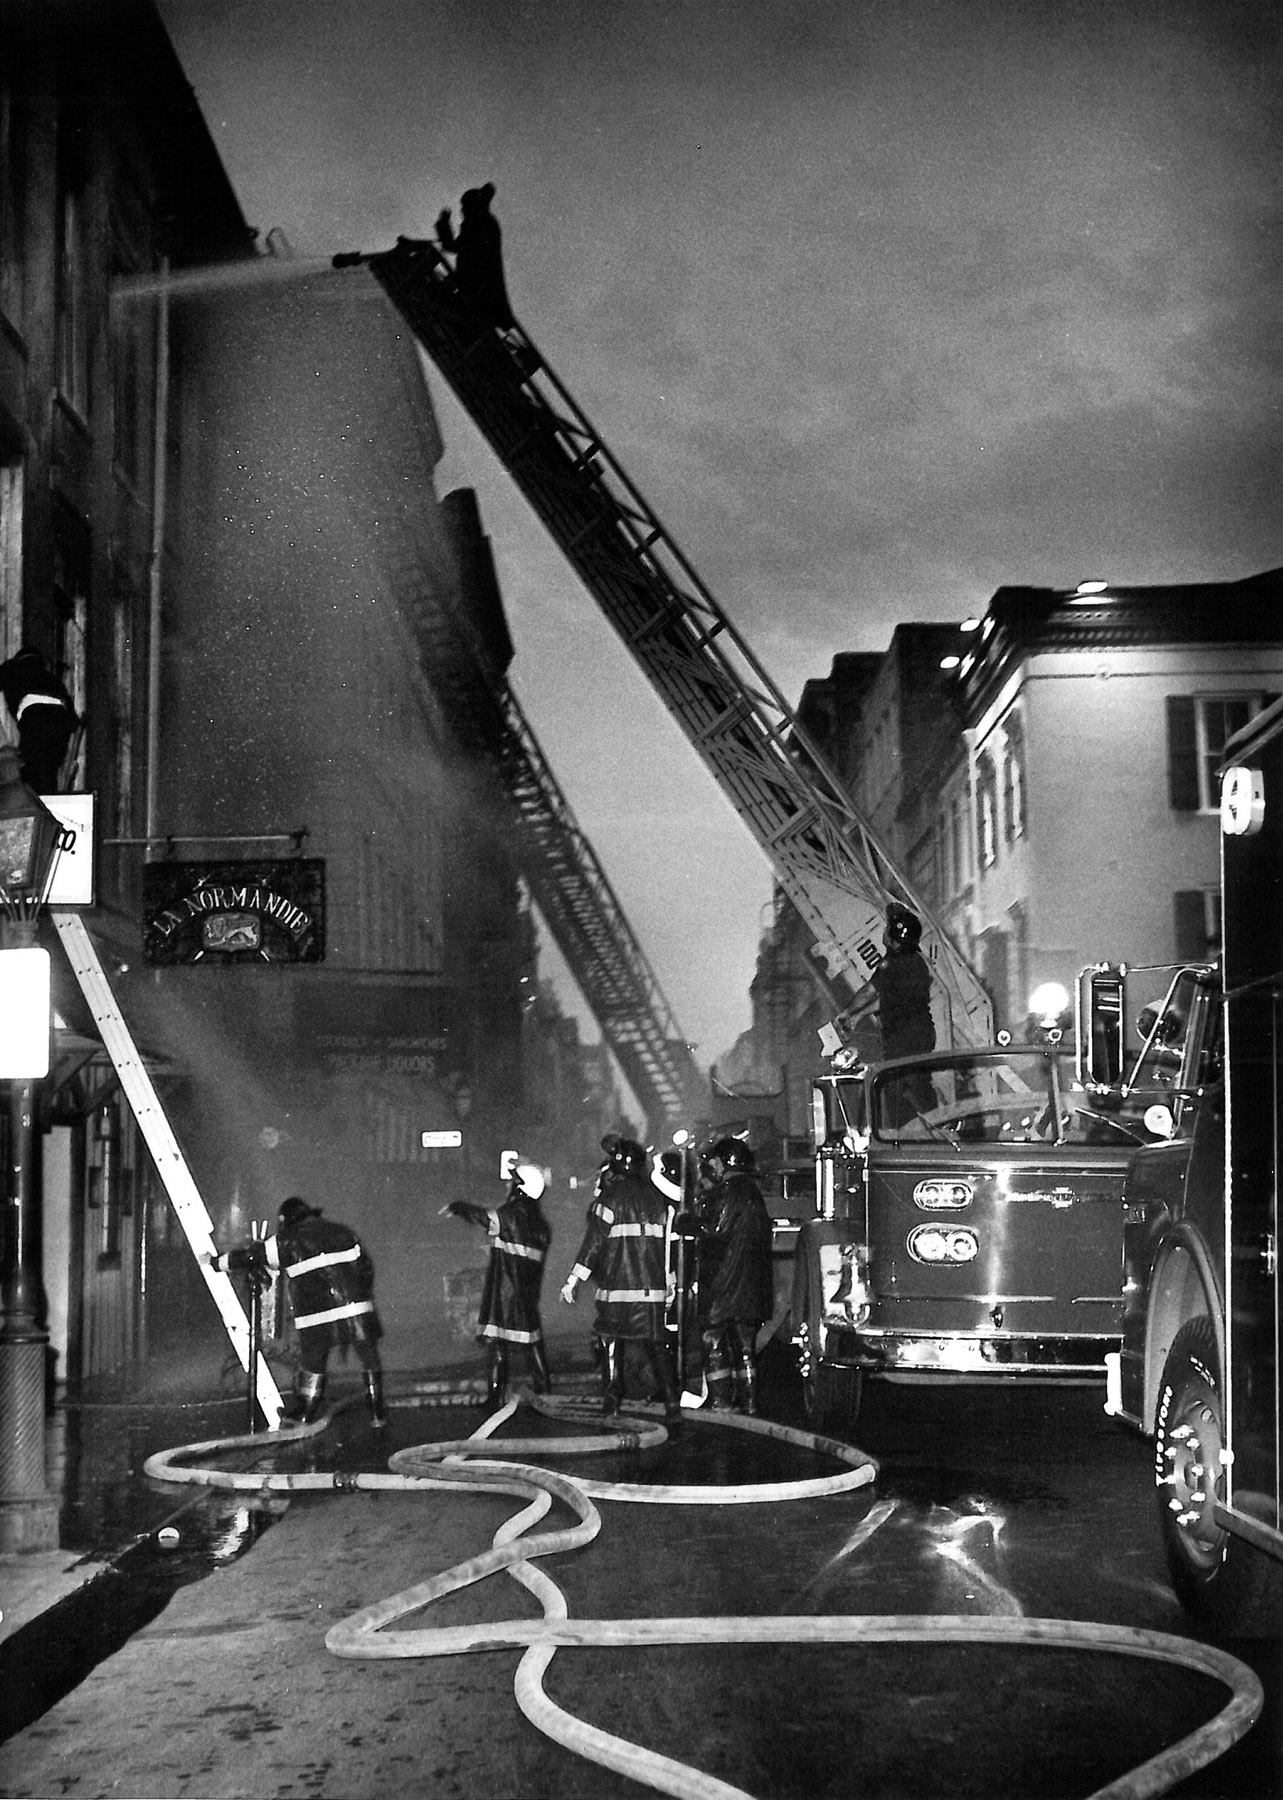 Panic erupted and everyone raced to the windows. They were covered with metal bars. Rasmussen called people to follow him—he knew a back exit. Only about 20 of the 65 patrons heard. Someone on the street called the fire station, but the Upstairs Lounge burned in 16 minutes.